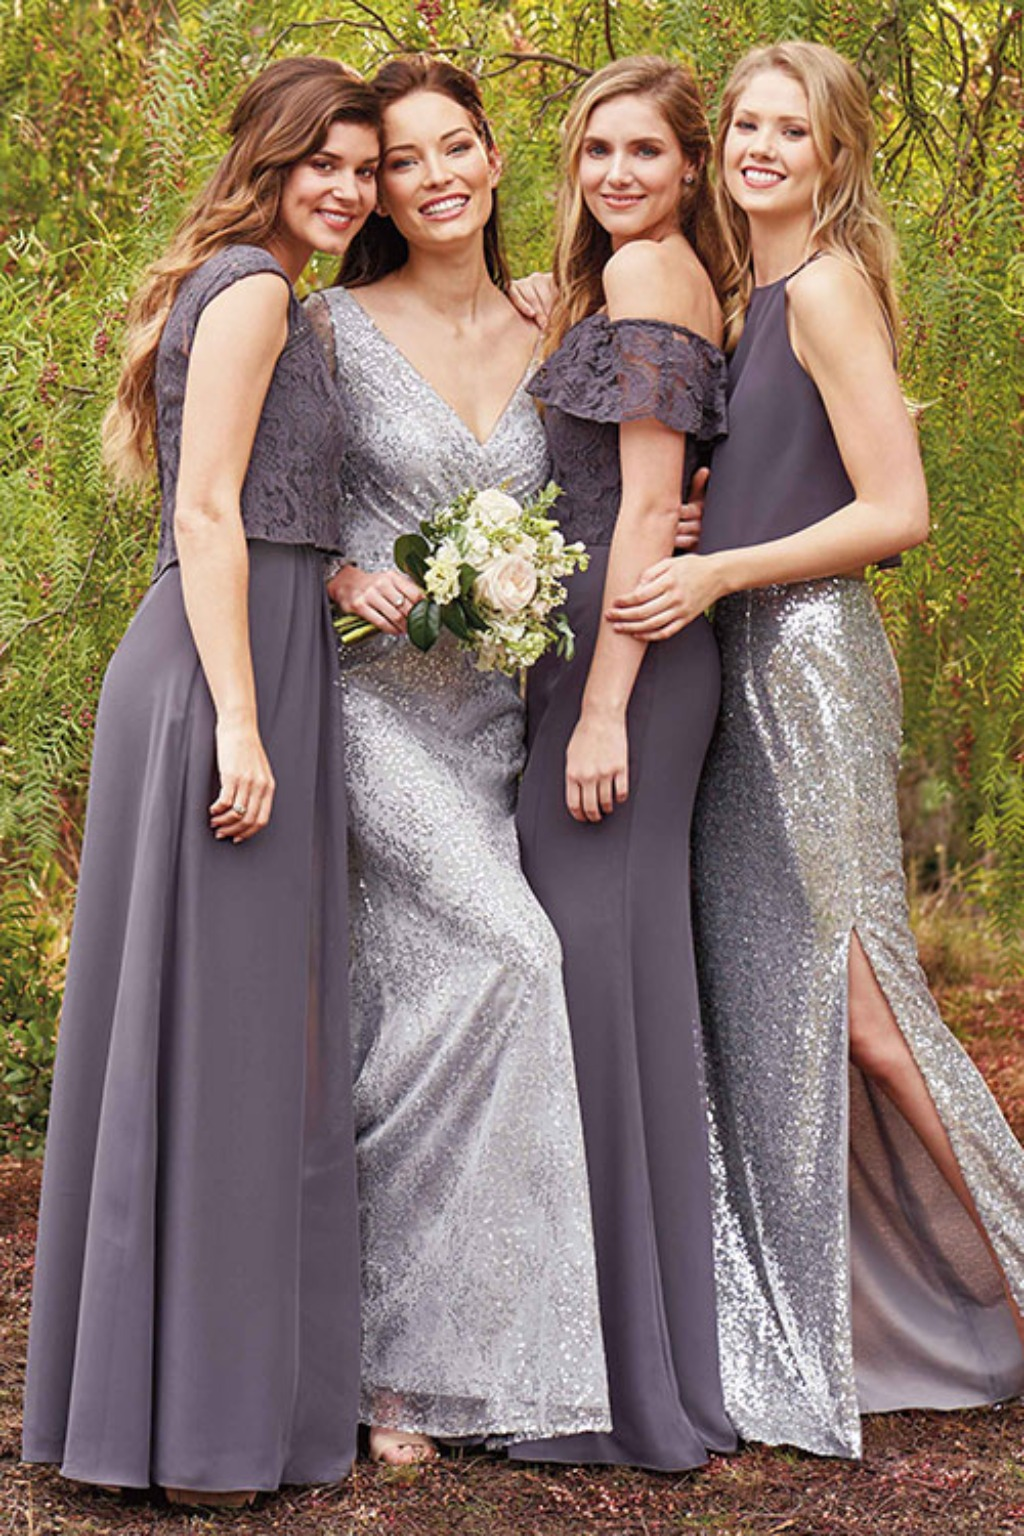 Jasmine Bridesmaids Trunk Show